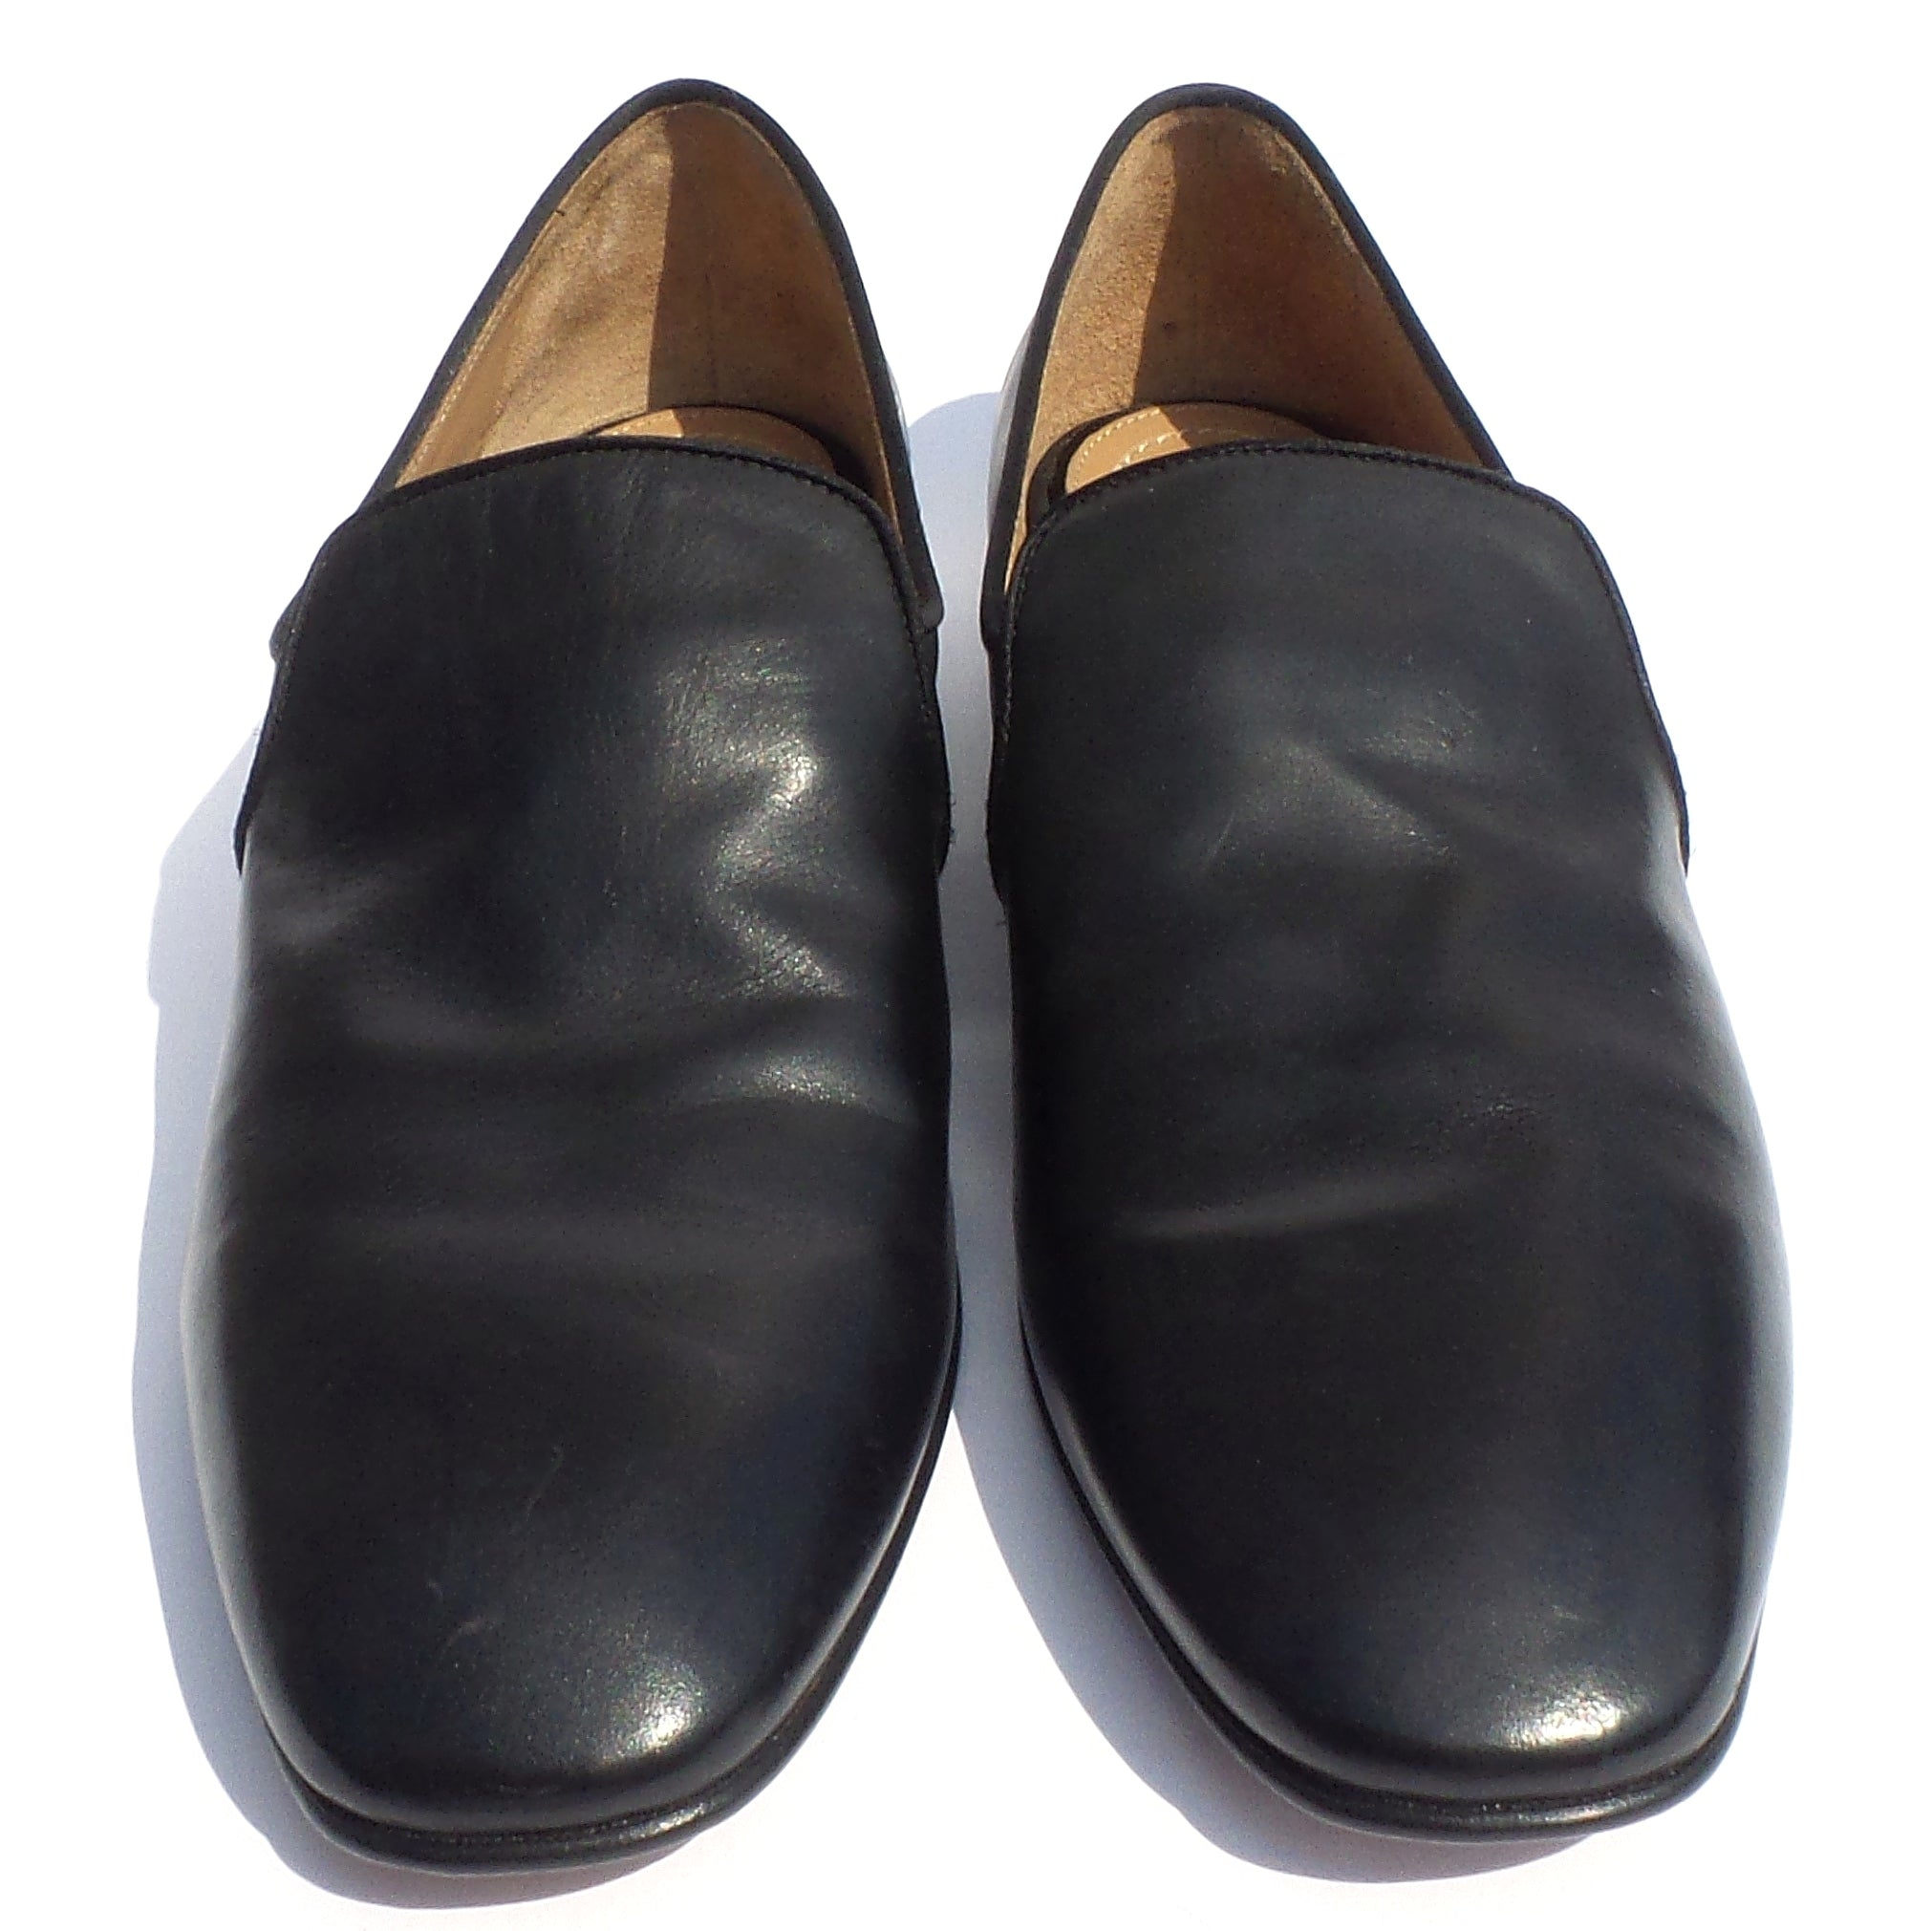 'Sold' $995 THE ROW Alys Black Calf Leather Satin Trim Loafers Slippers Flats 37.5 38